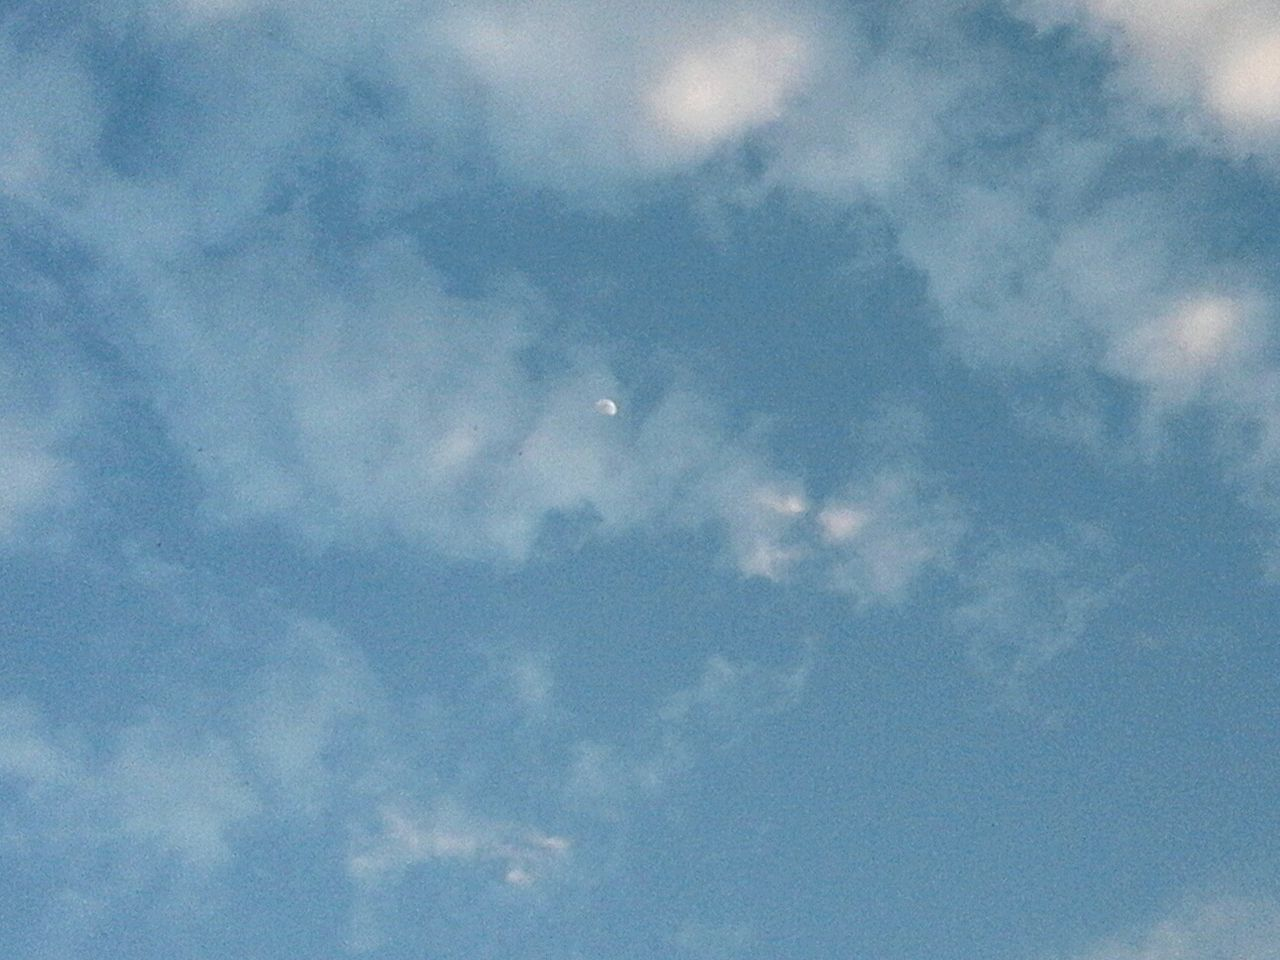 sky, cloud - sky, nature, low angle view, beauty in nature, sky only, backgrounds, scenics, no people, tranquility, full frame, blue, tranquil scene, outdoors, day